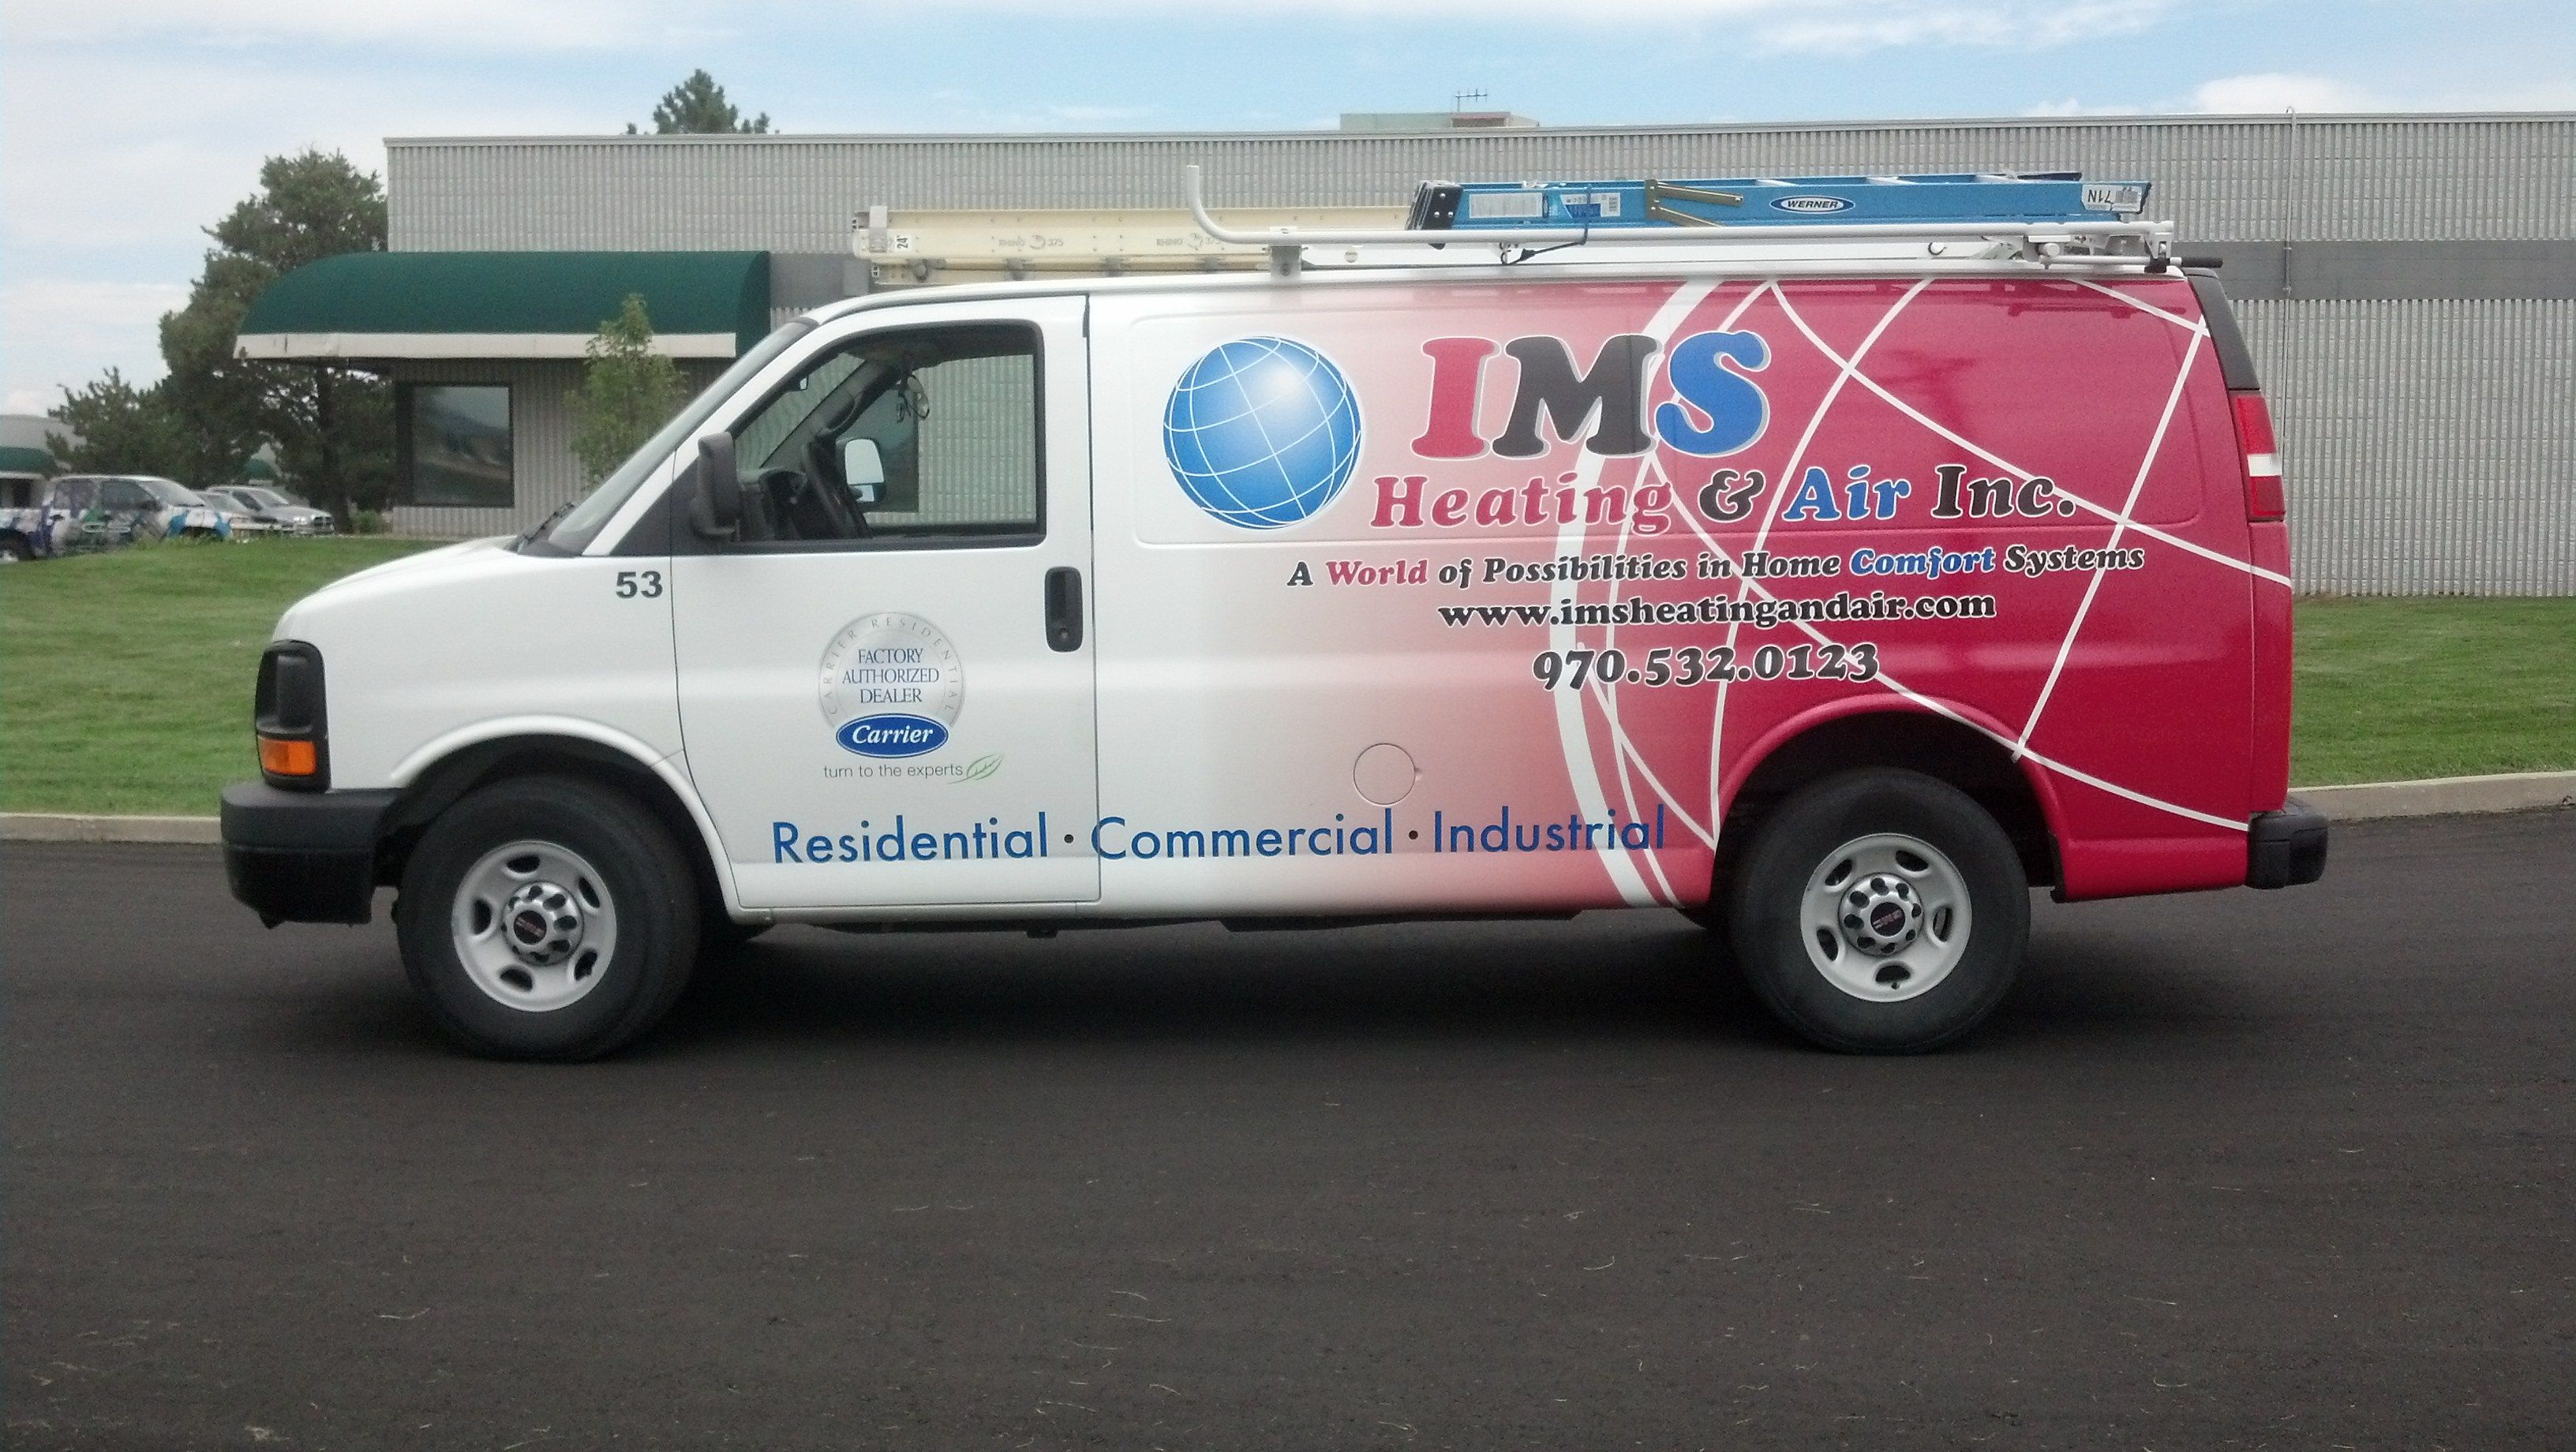 Full van wrap vehicle wraps